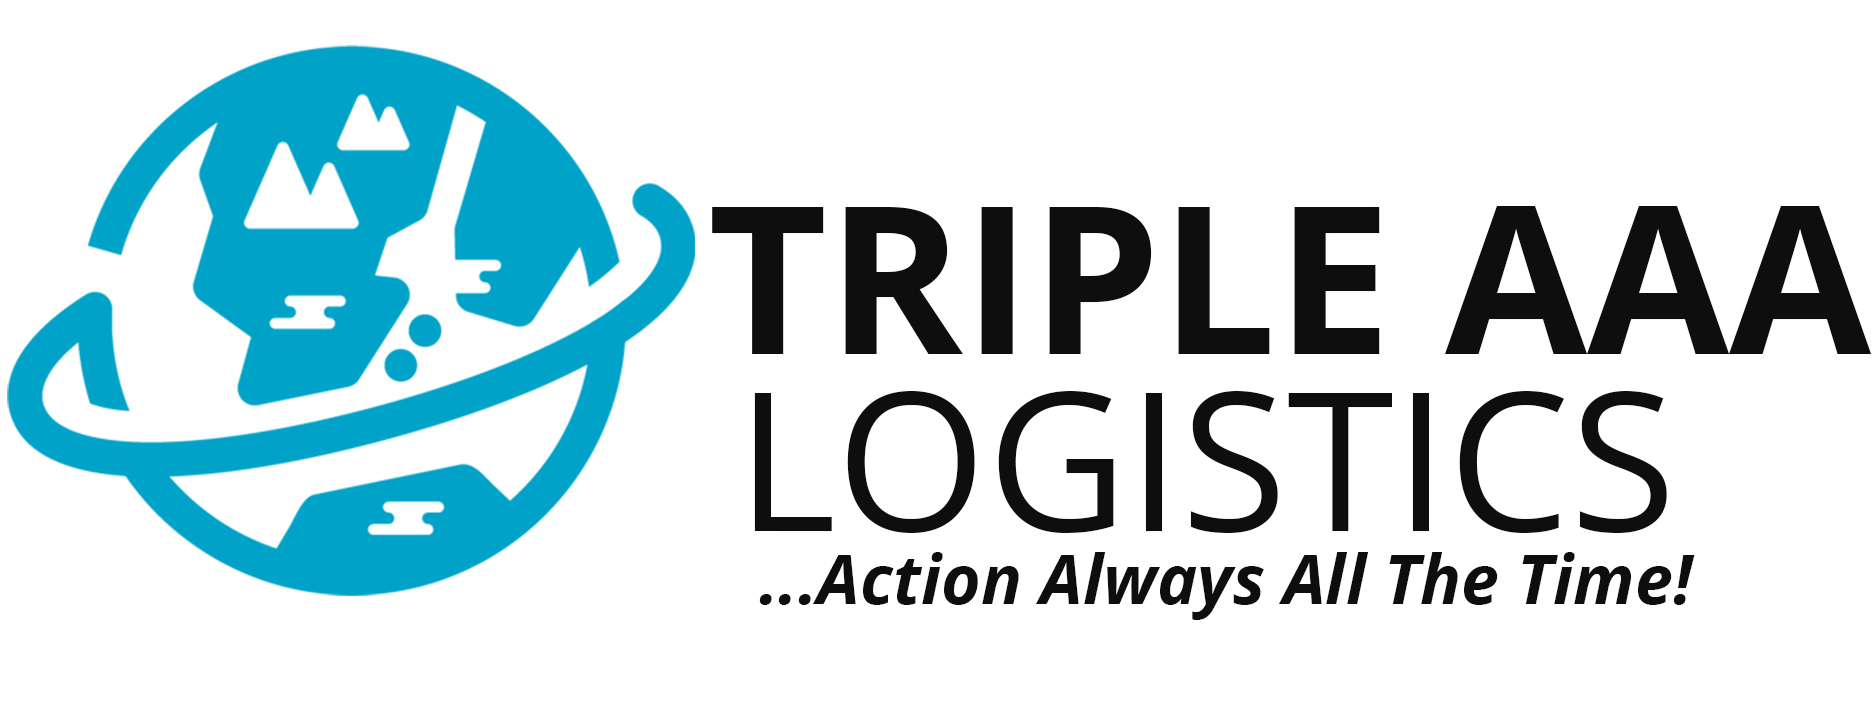 Home - TRIPLE AAA LOGISTICS